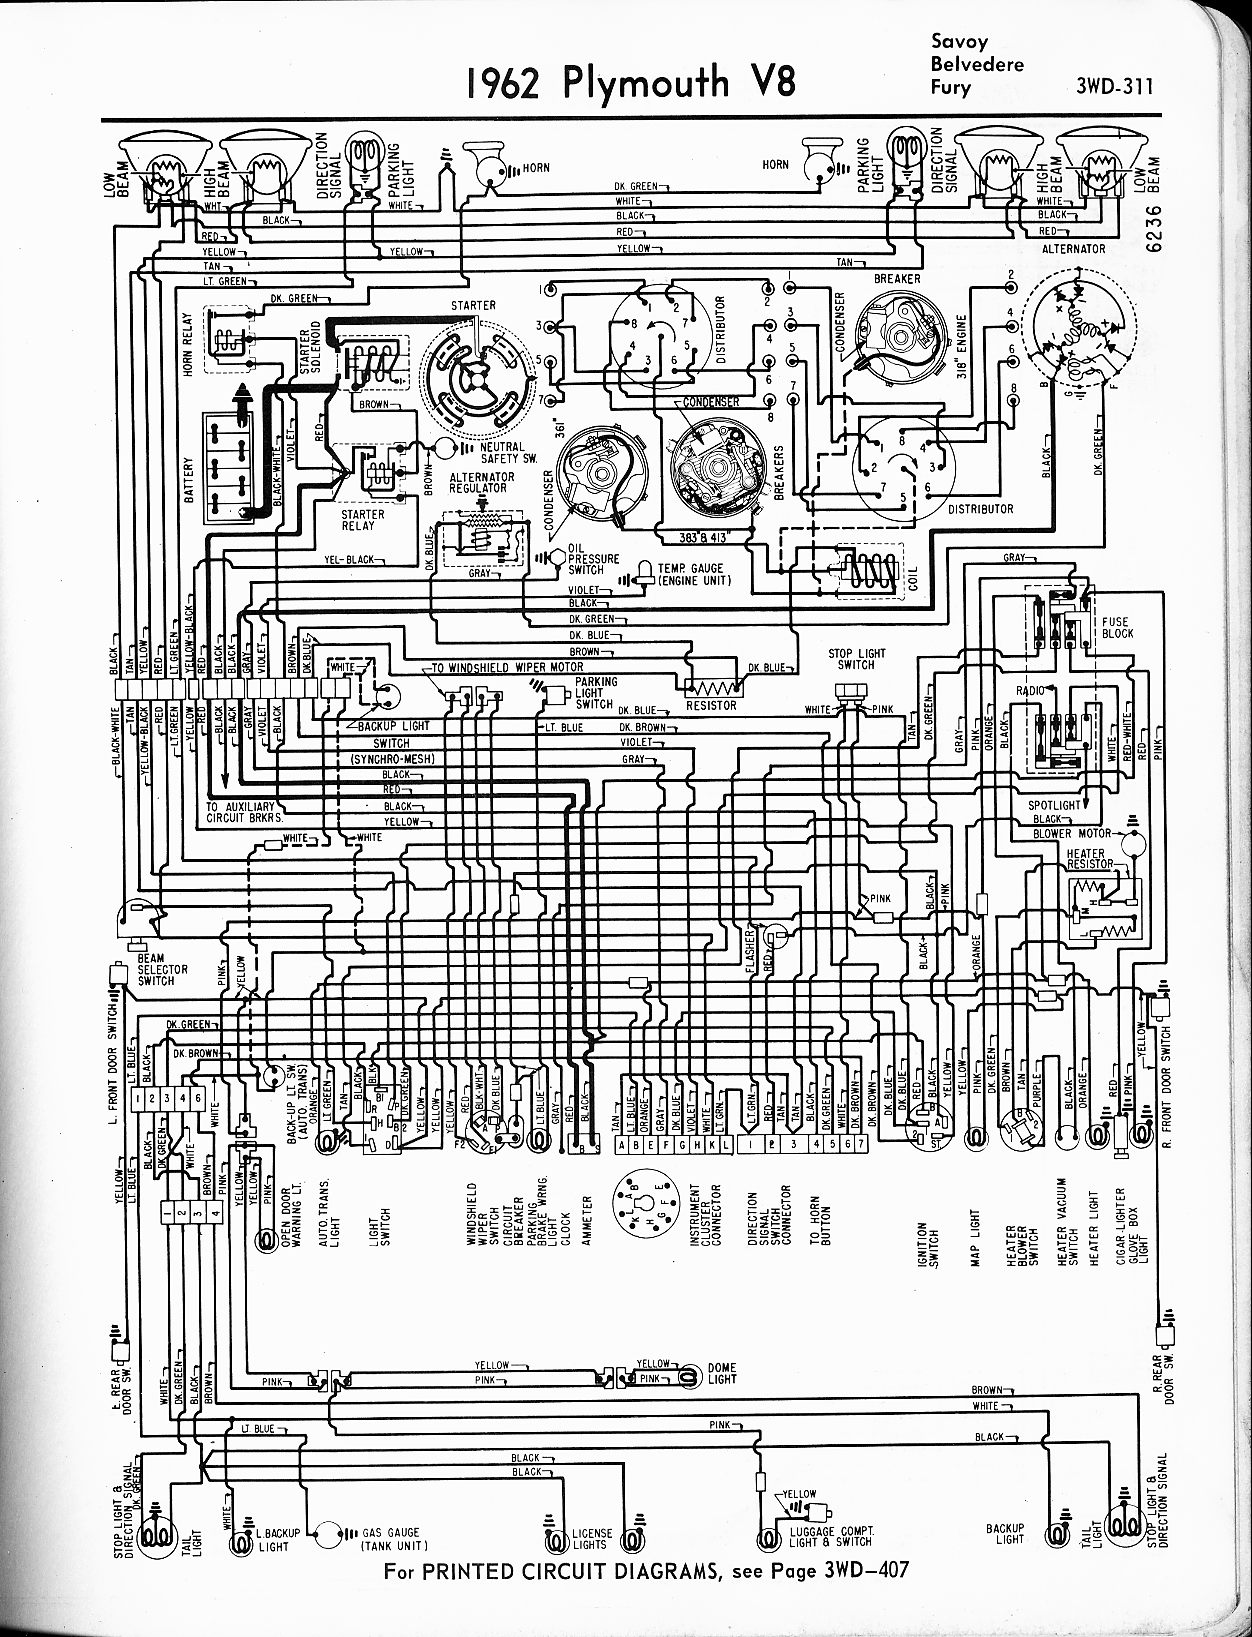 MWire5765 311 1956 1965 plymouth wiring the old car manual project 64 valiant wiring diagram at bayanpartner.co